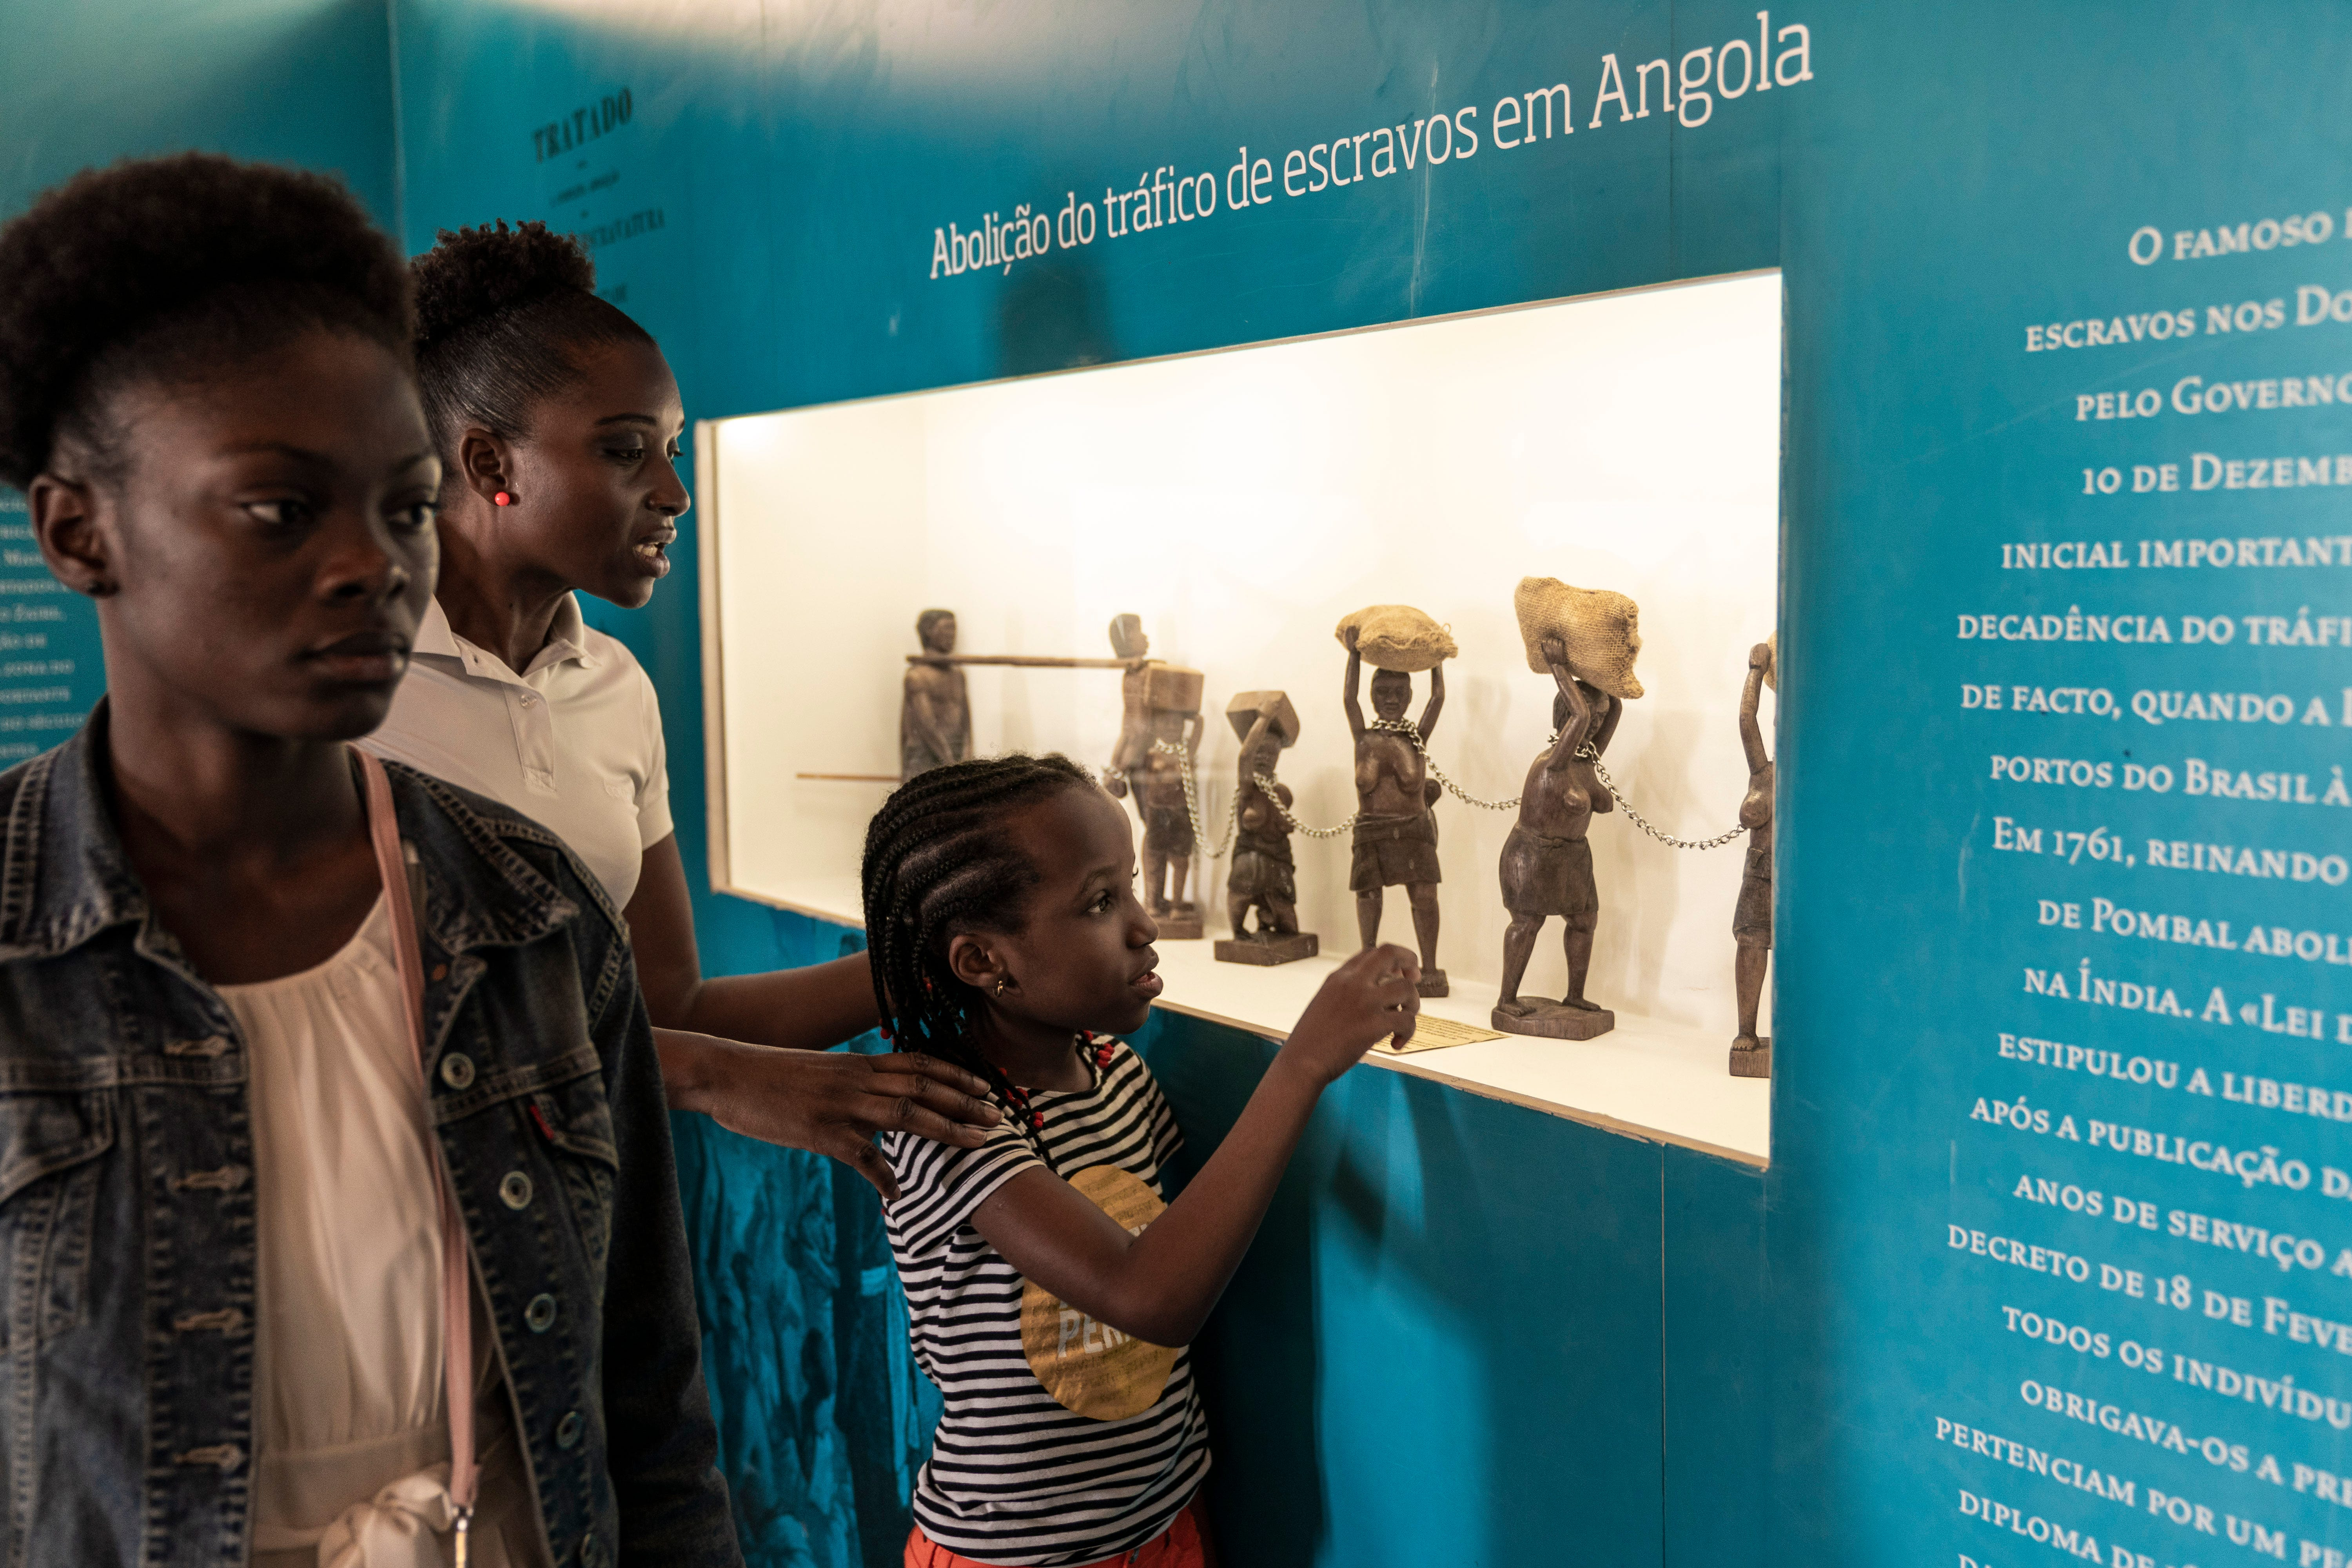 The slave trading hall is now the National Museum of Slavery in Morro Da Crus, Angola.